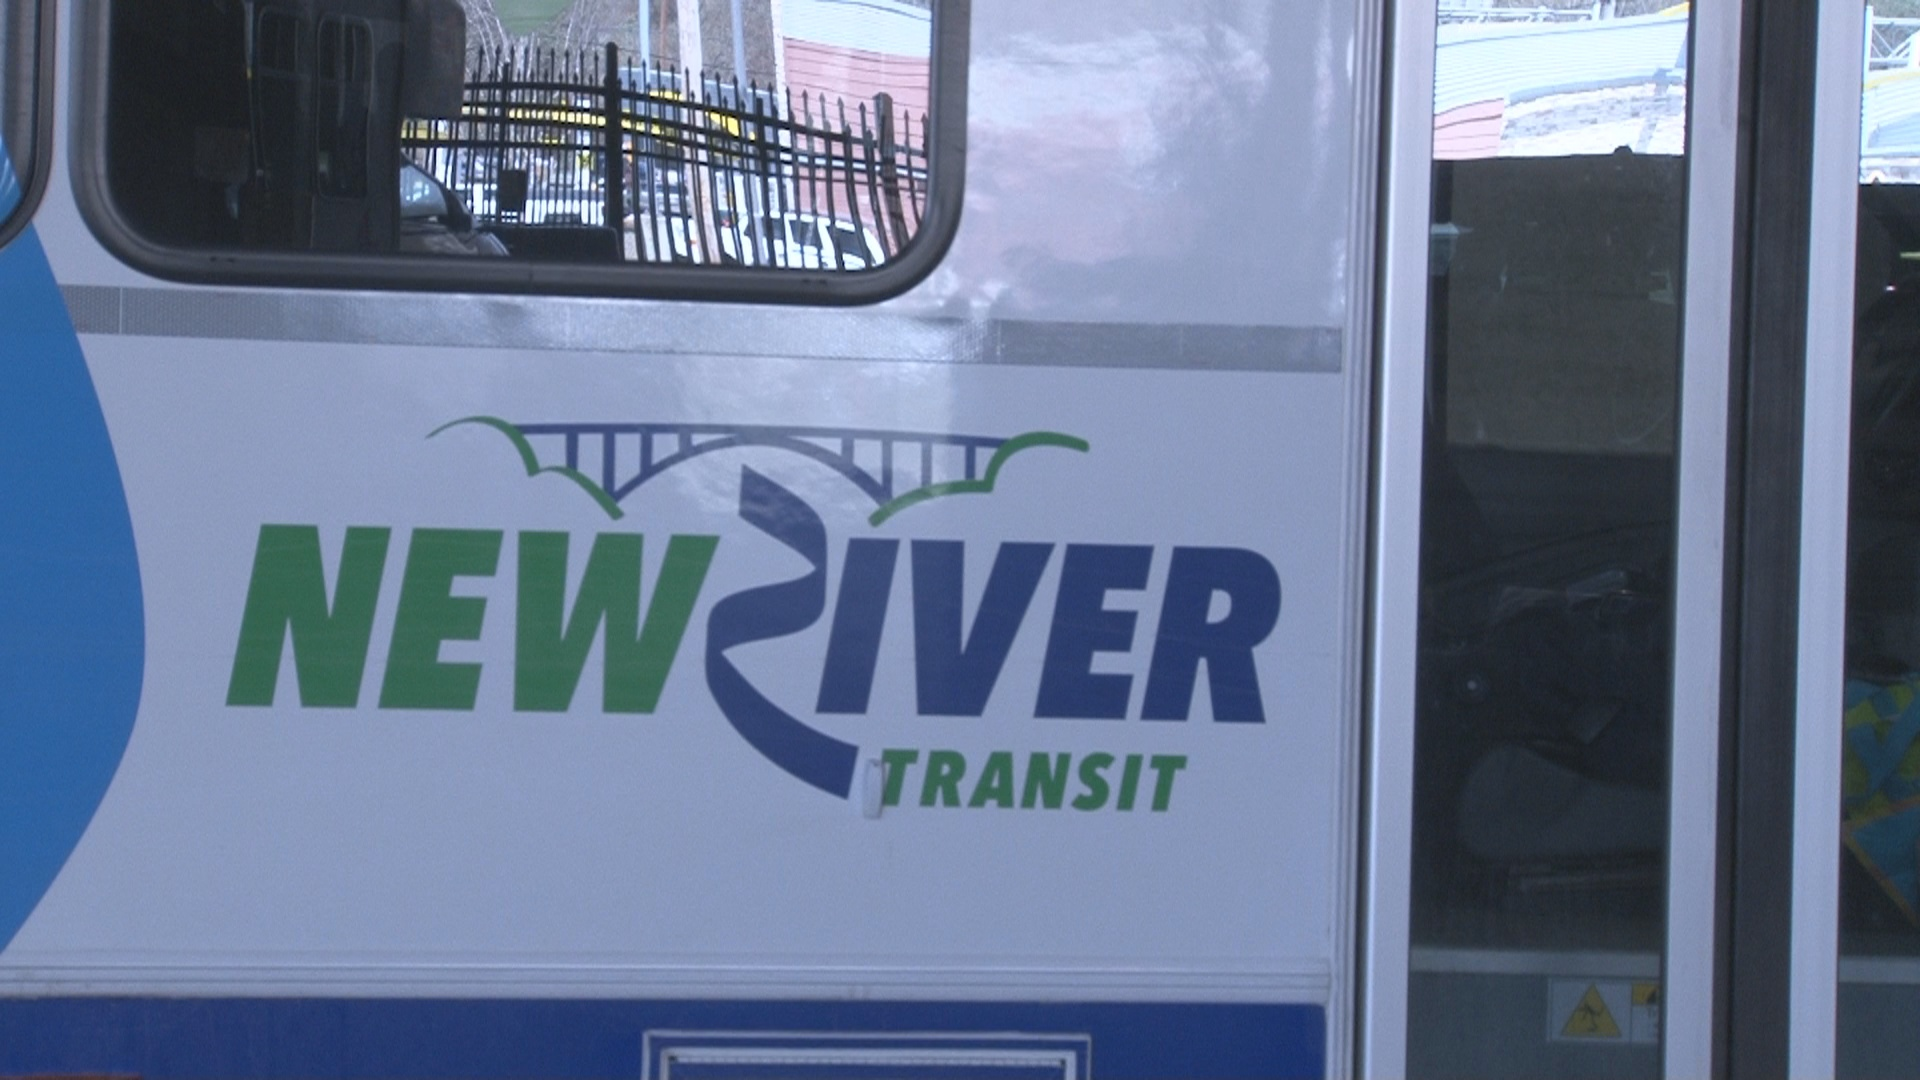 New River Transit.jpg